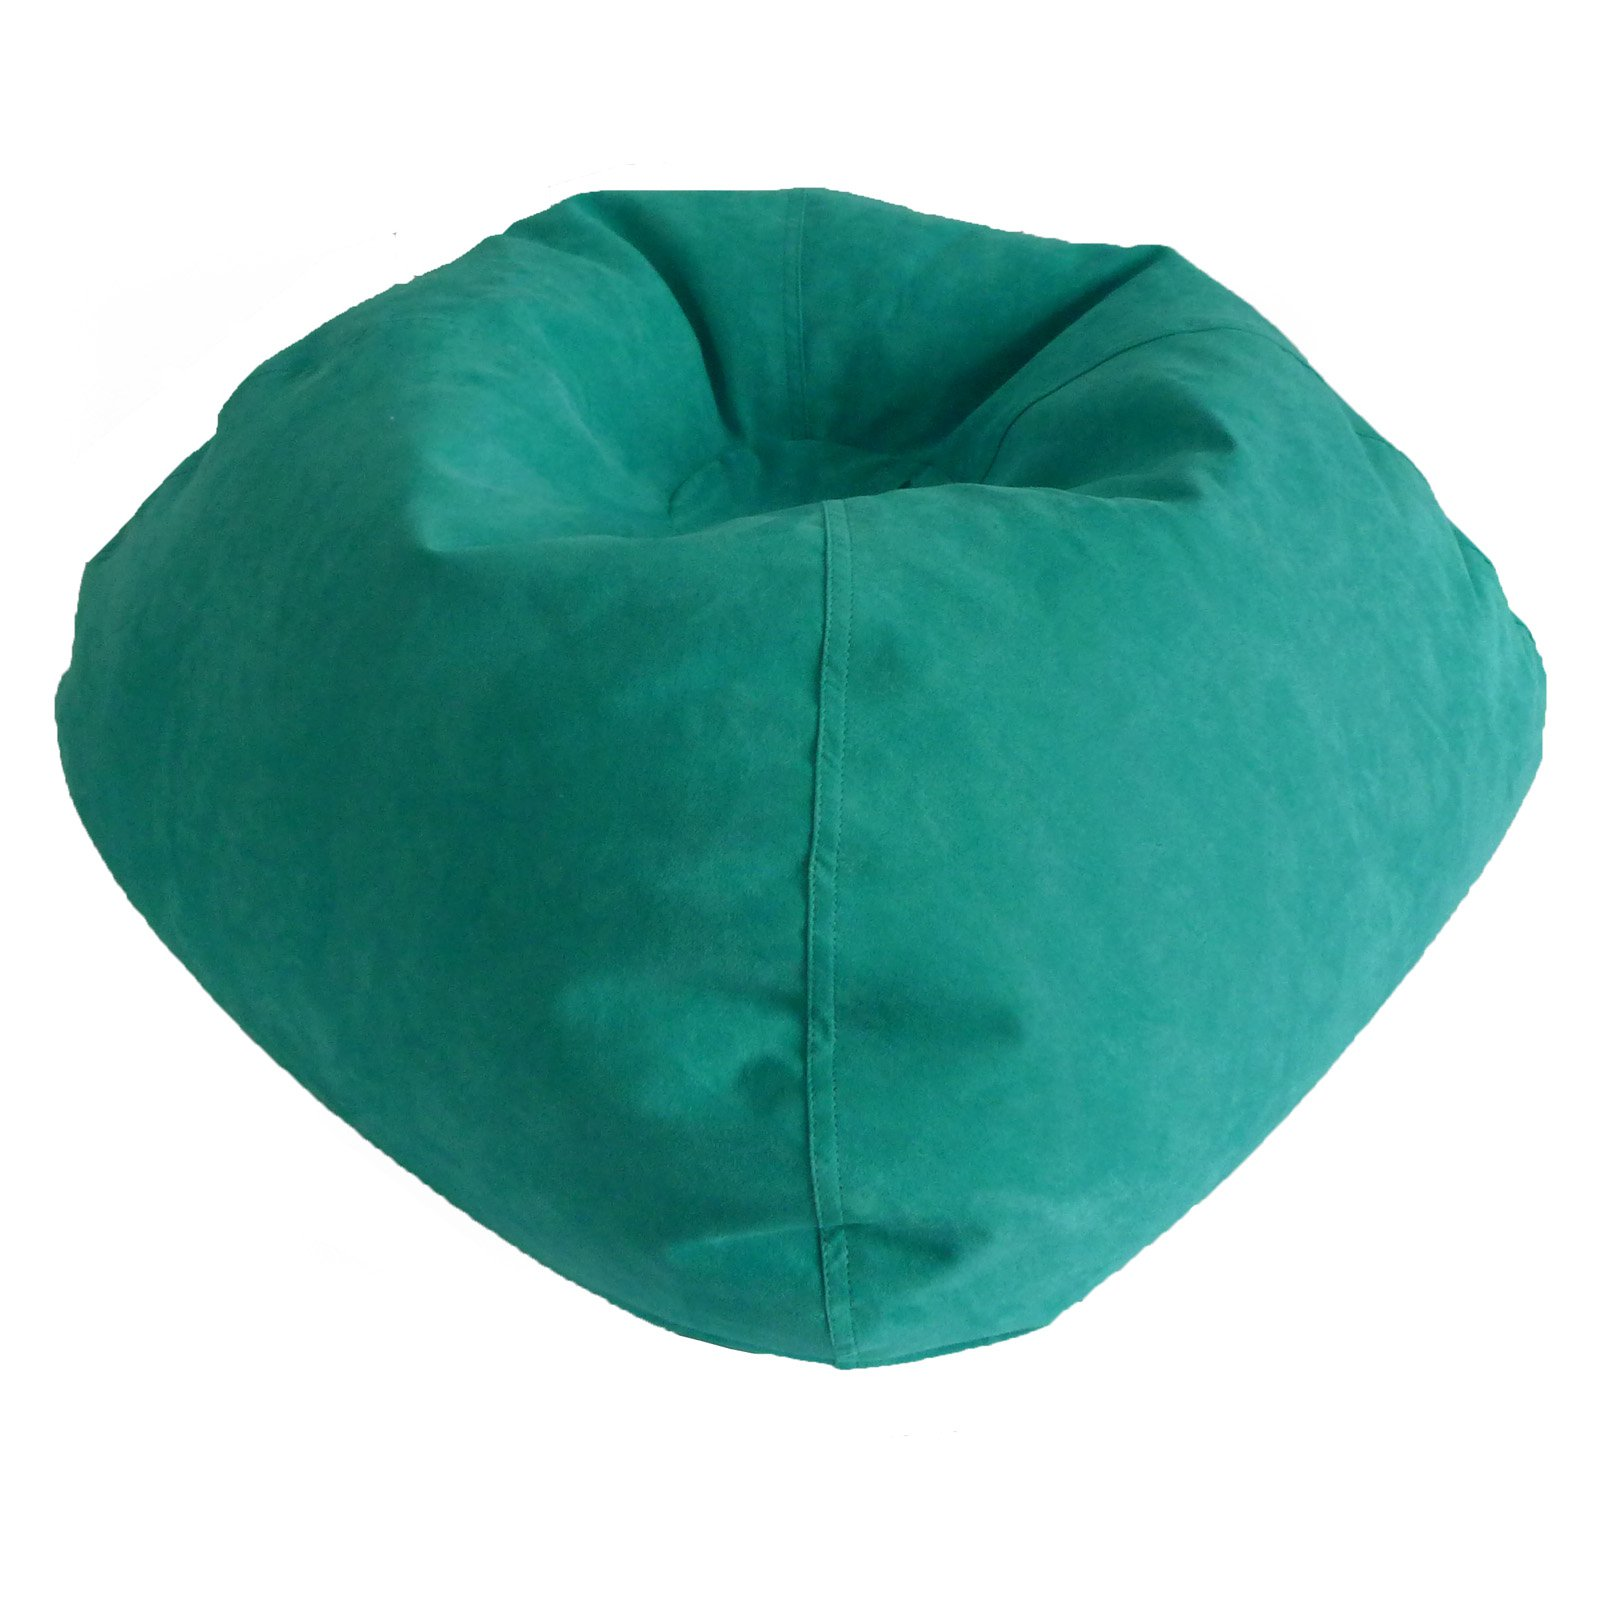 where to buy bean bag chairs barrel that swivel large microsuede available in multiple colors walmart com